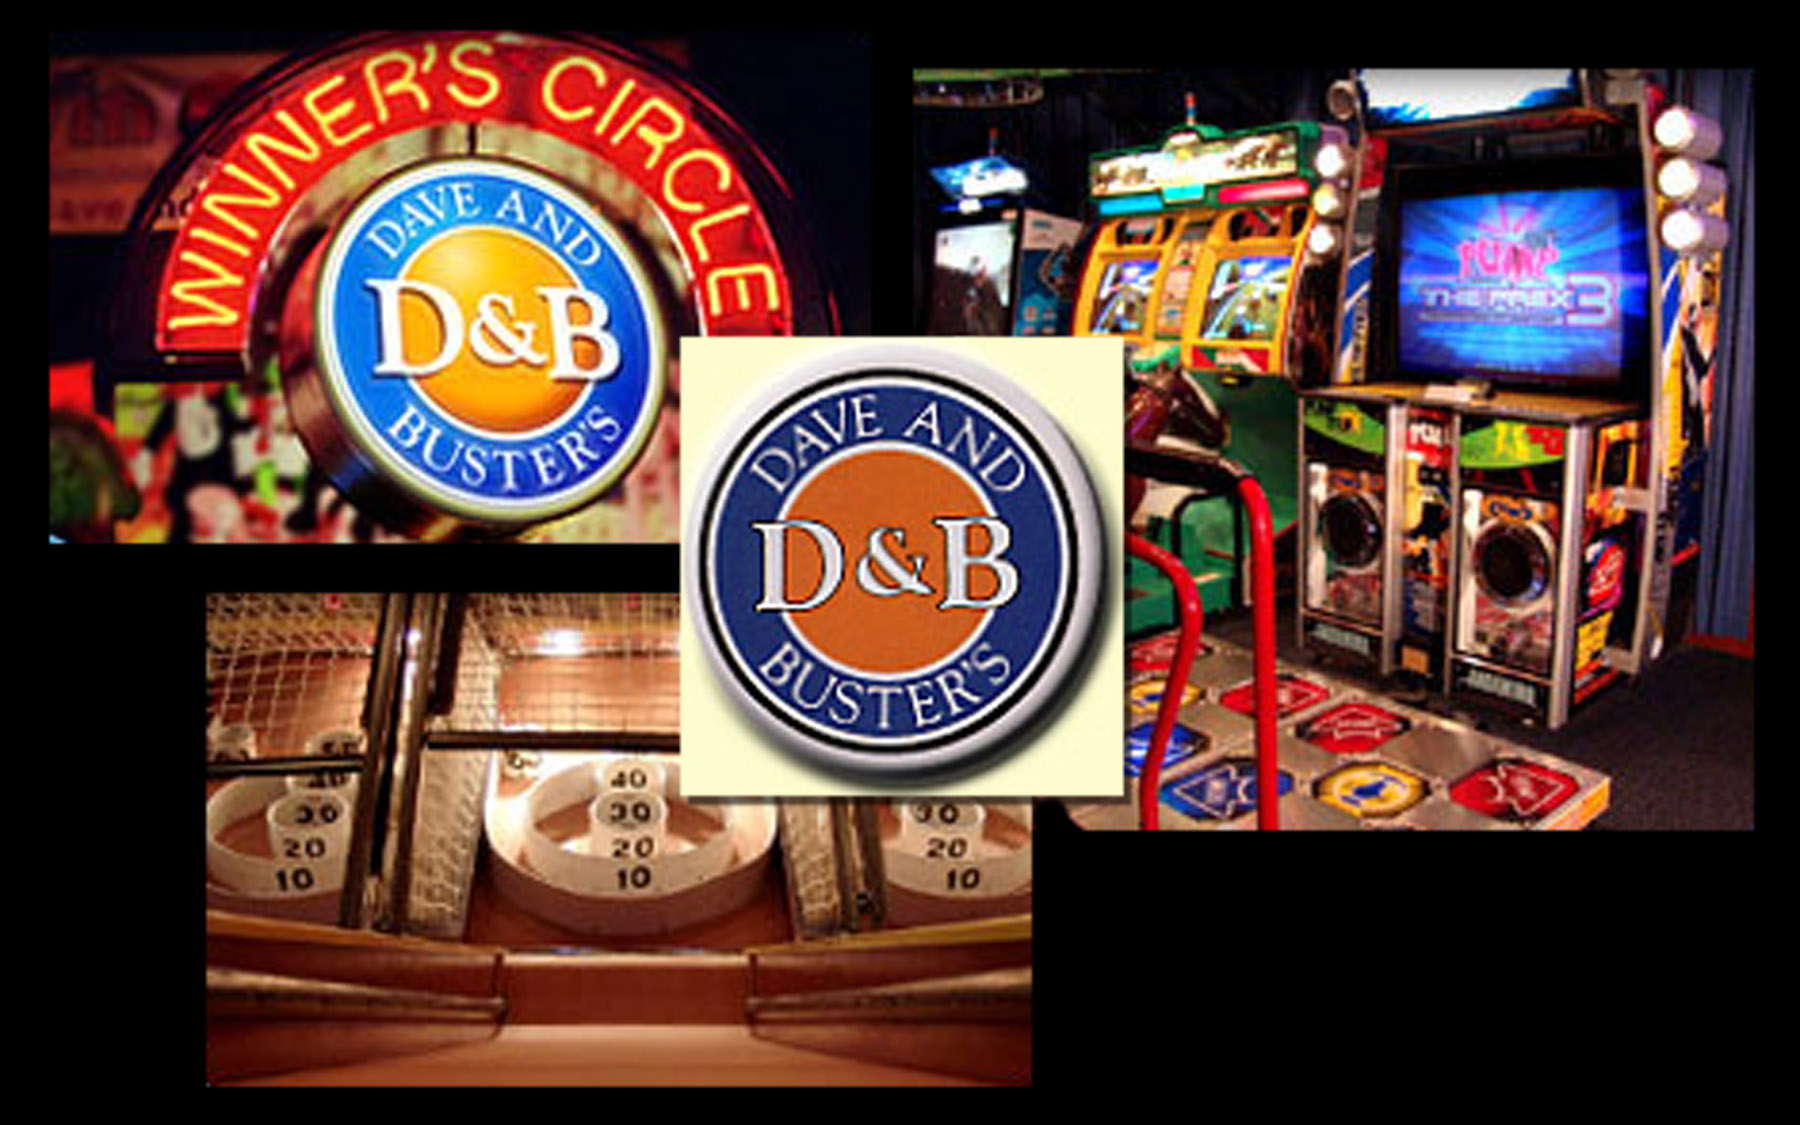 Dave & Buster's in Capitol Heights, MD